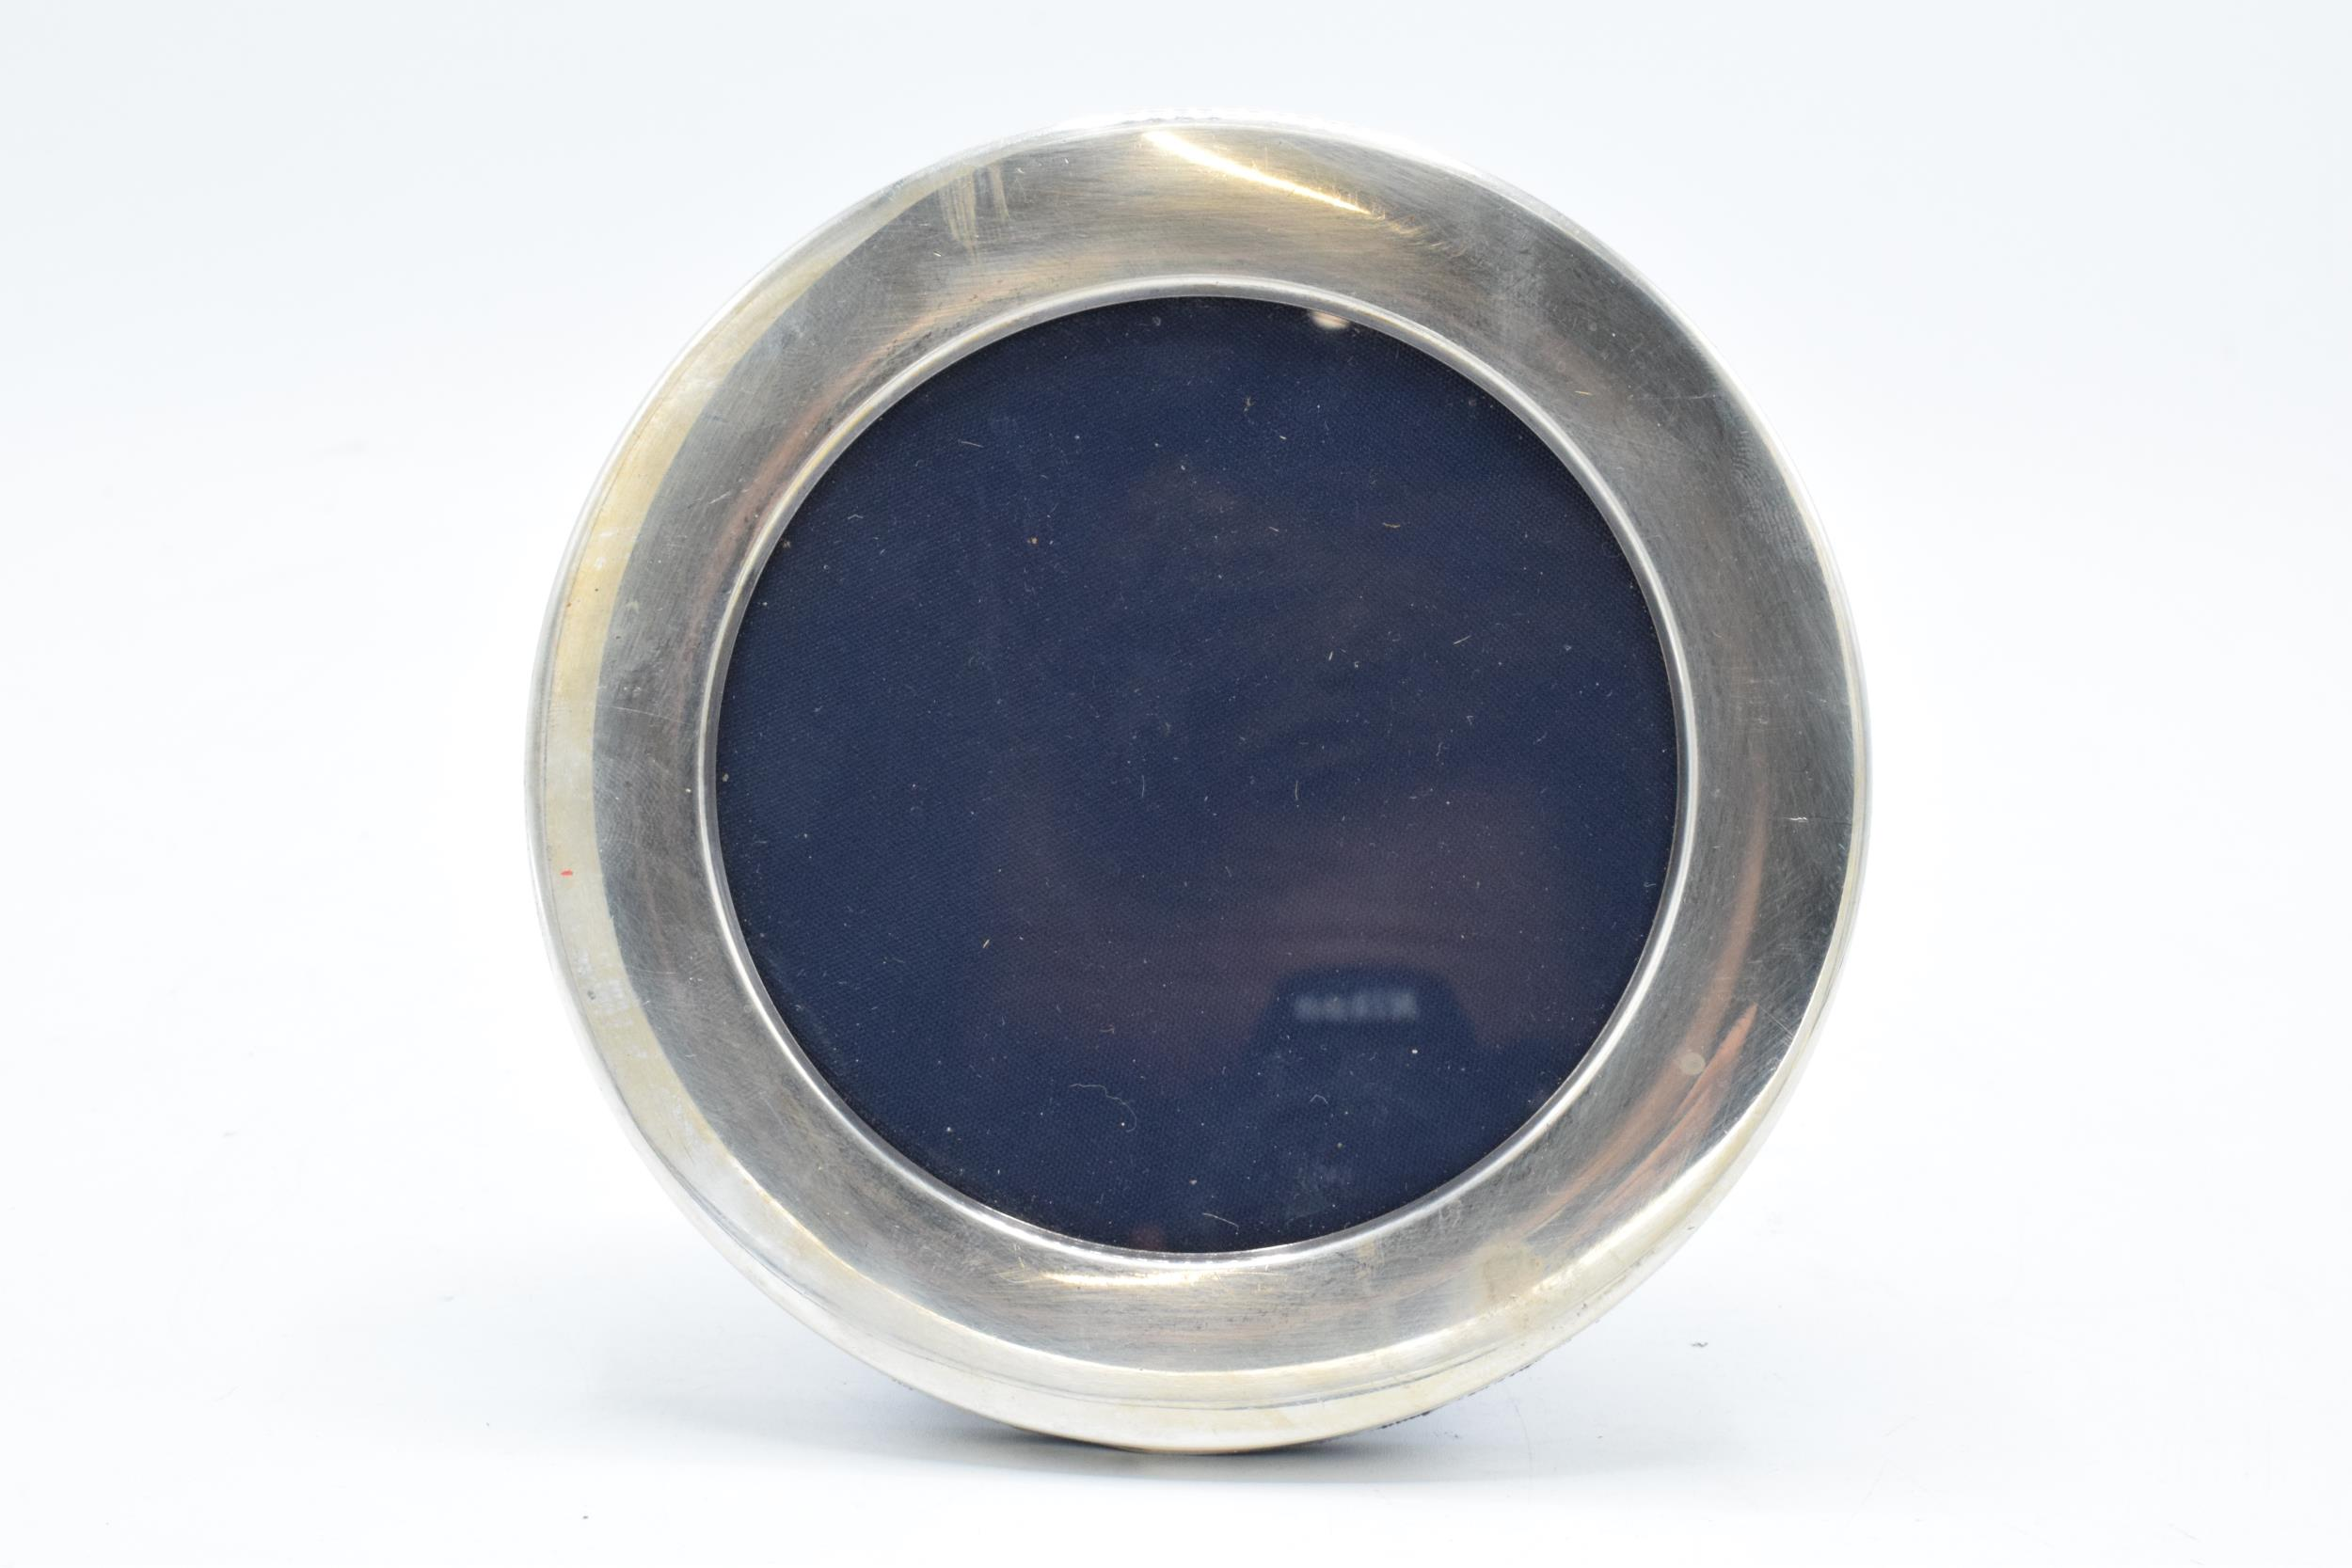 A silver circular photo frame (potentially Sheffield 1996). In good condition with no obvious damage